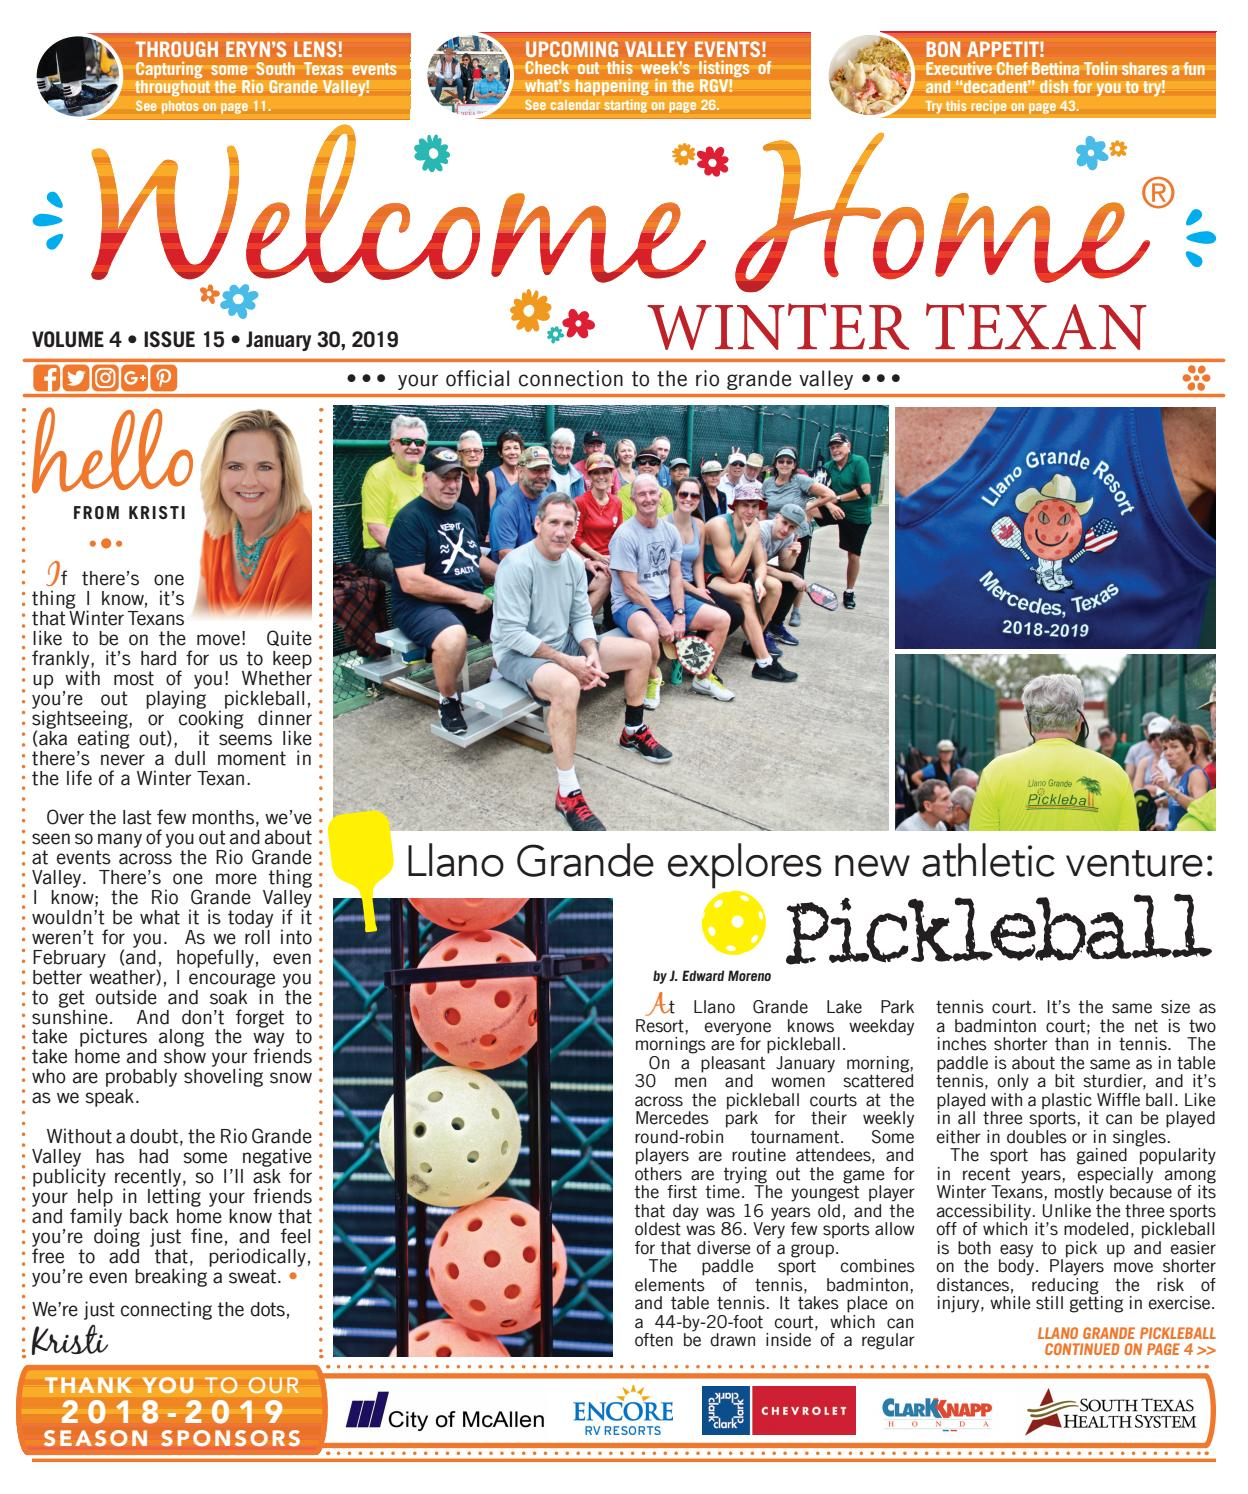 c07b0117438 Welcome Home Winter Texan   Vol 4 Issue 15   January 30